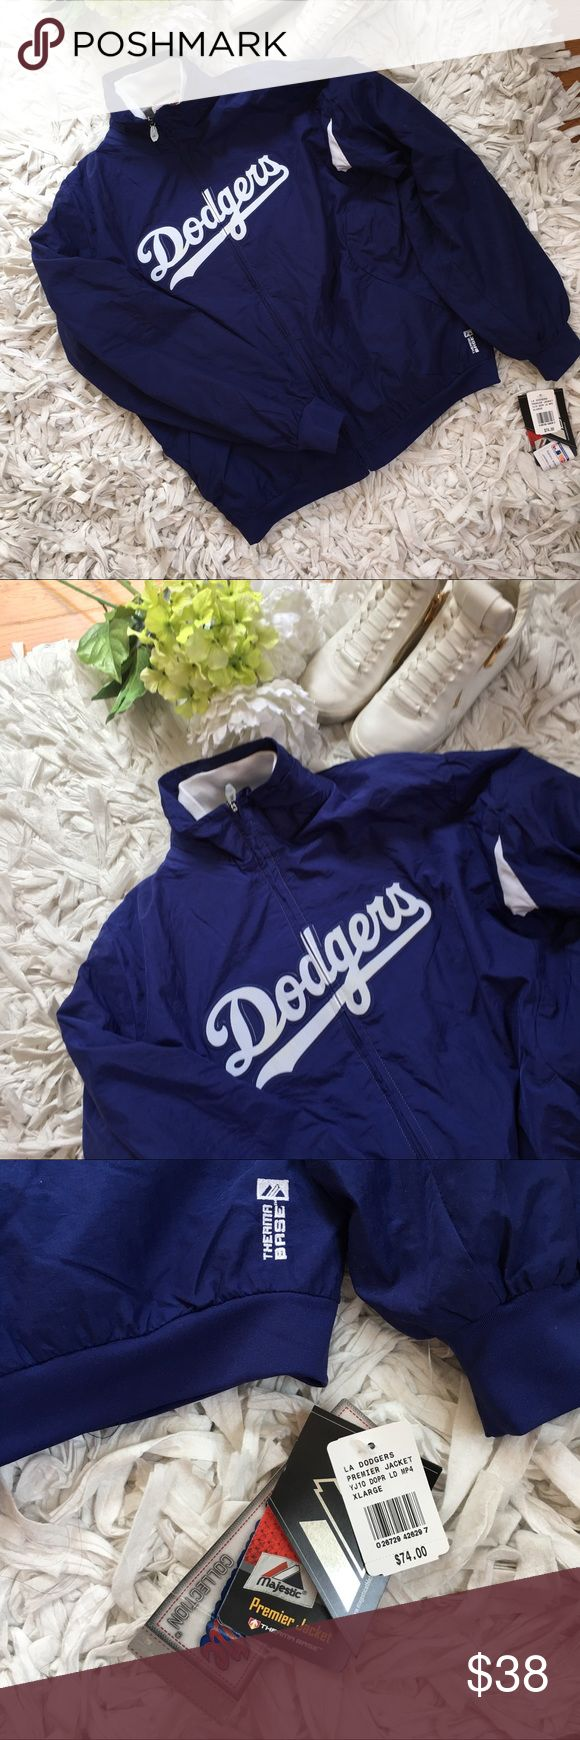 ⚾️NWT DODGERS JACKET!⚾️ AUTHENTIC & NEVER WORN Brand new youth XL Los Angeles Dodgers Majestic premier jacket. Wind resistant jacket with fleece lining on the inside. This jacket is a youth XL but can fit women sizes Small/Medium. New with tags!! Taking all reasonable offers ⚾️ kept in a smoke and pet free environment Majestic Jackets & Coats